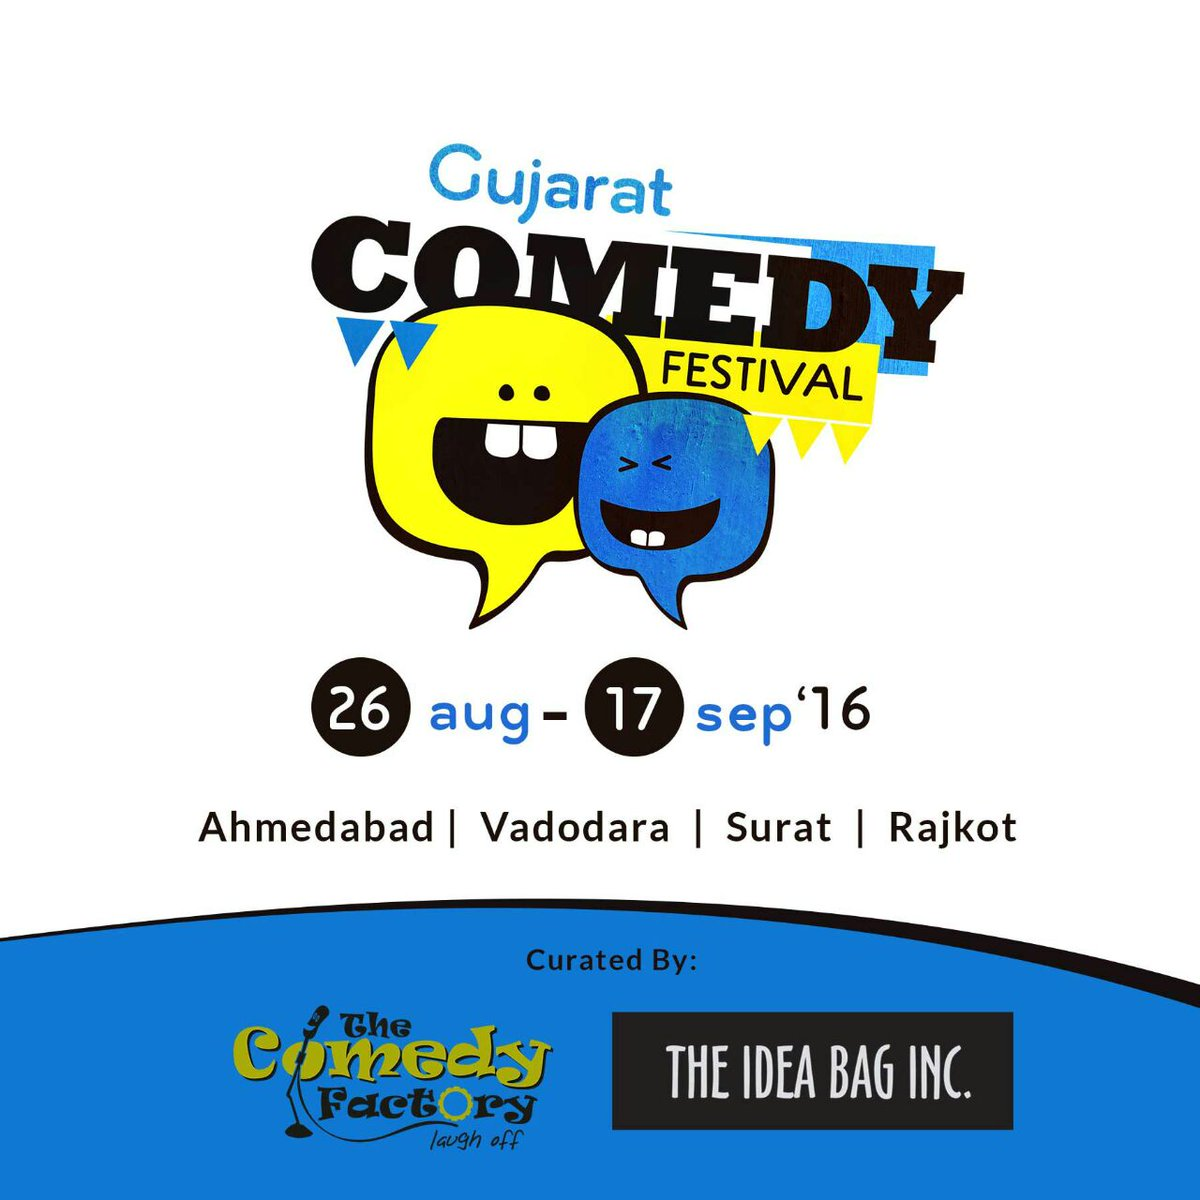 We are set to have our own comedy festival. Curated by @ComedyFactoryIn and idea bag. Inc :D https://t.co/fiW4GkRcVq